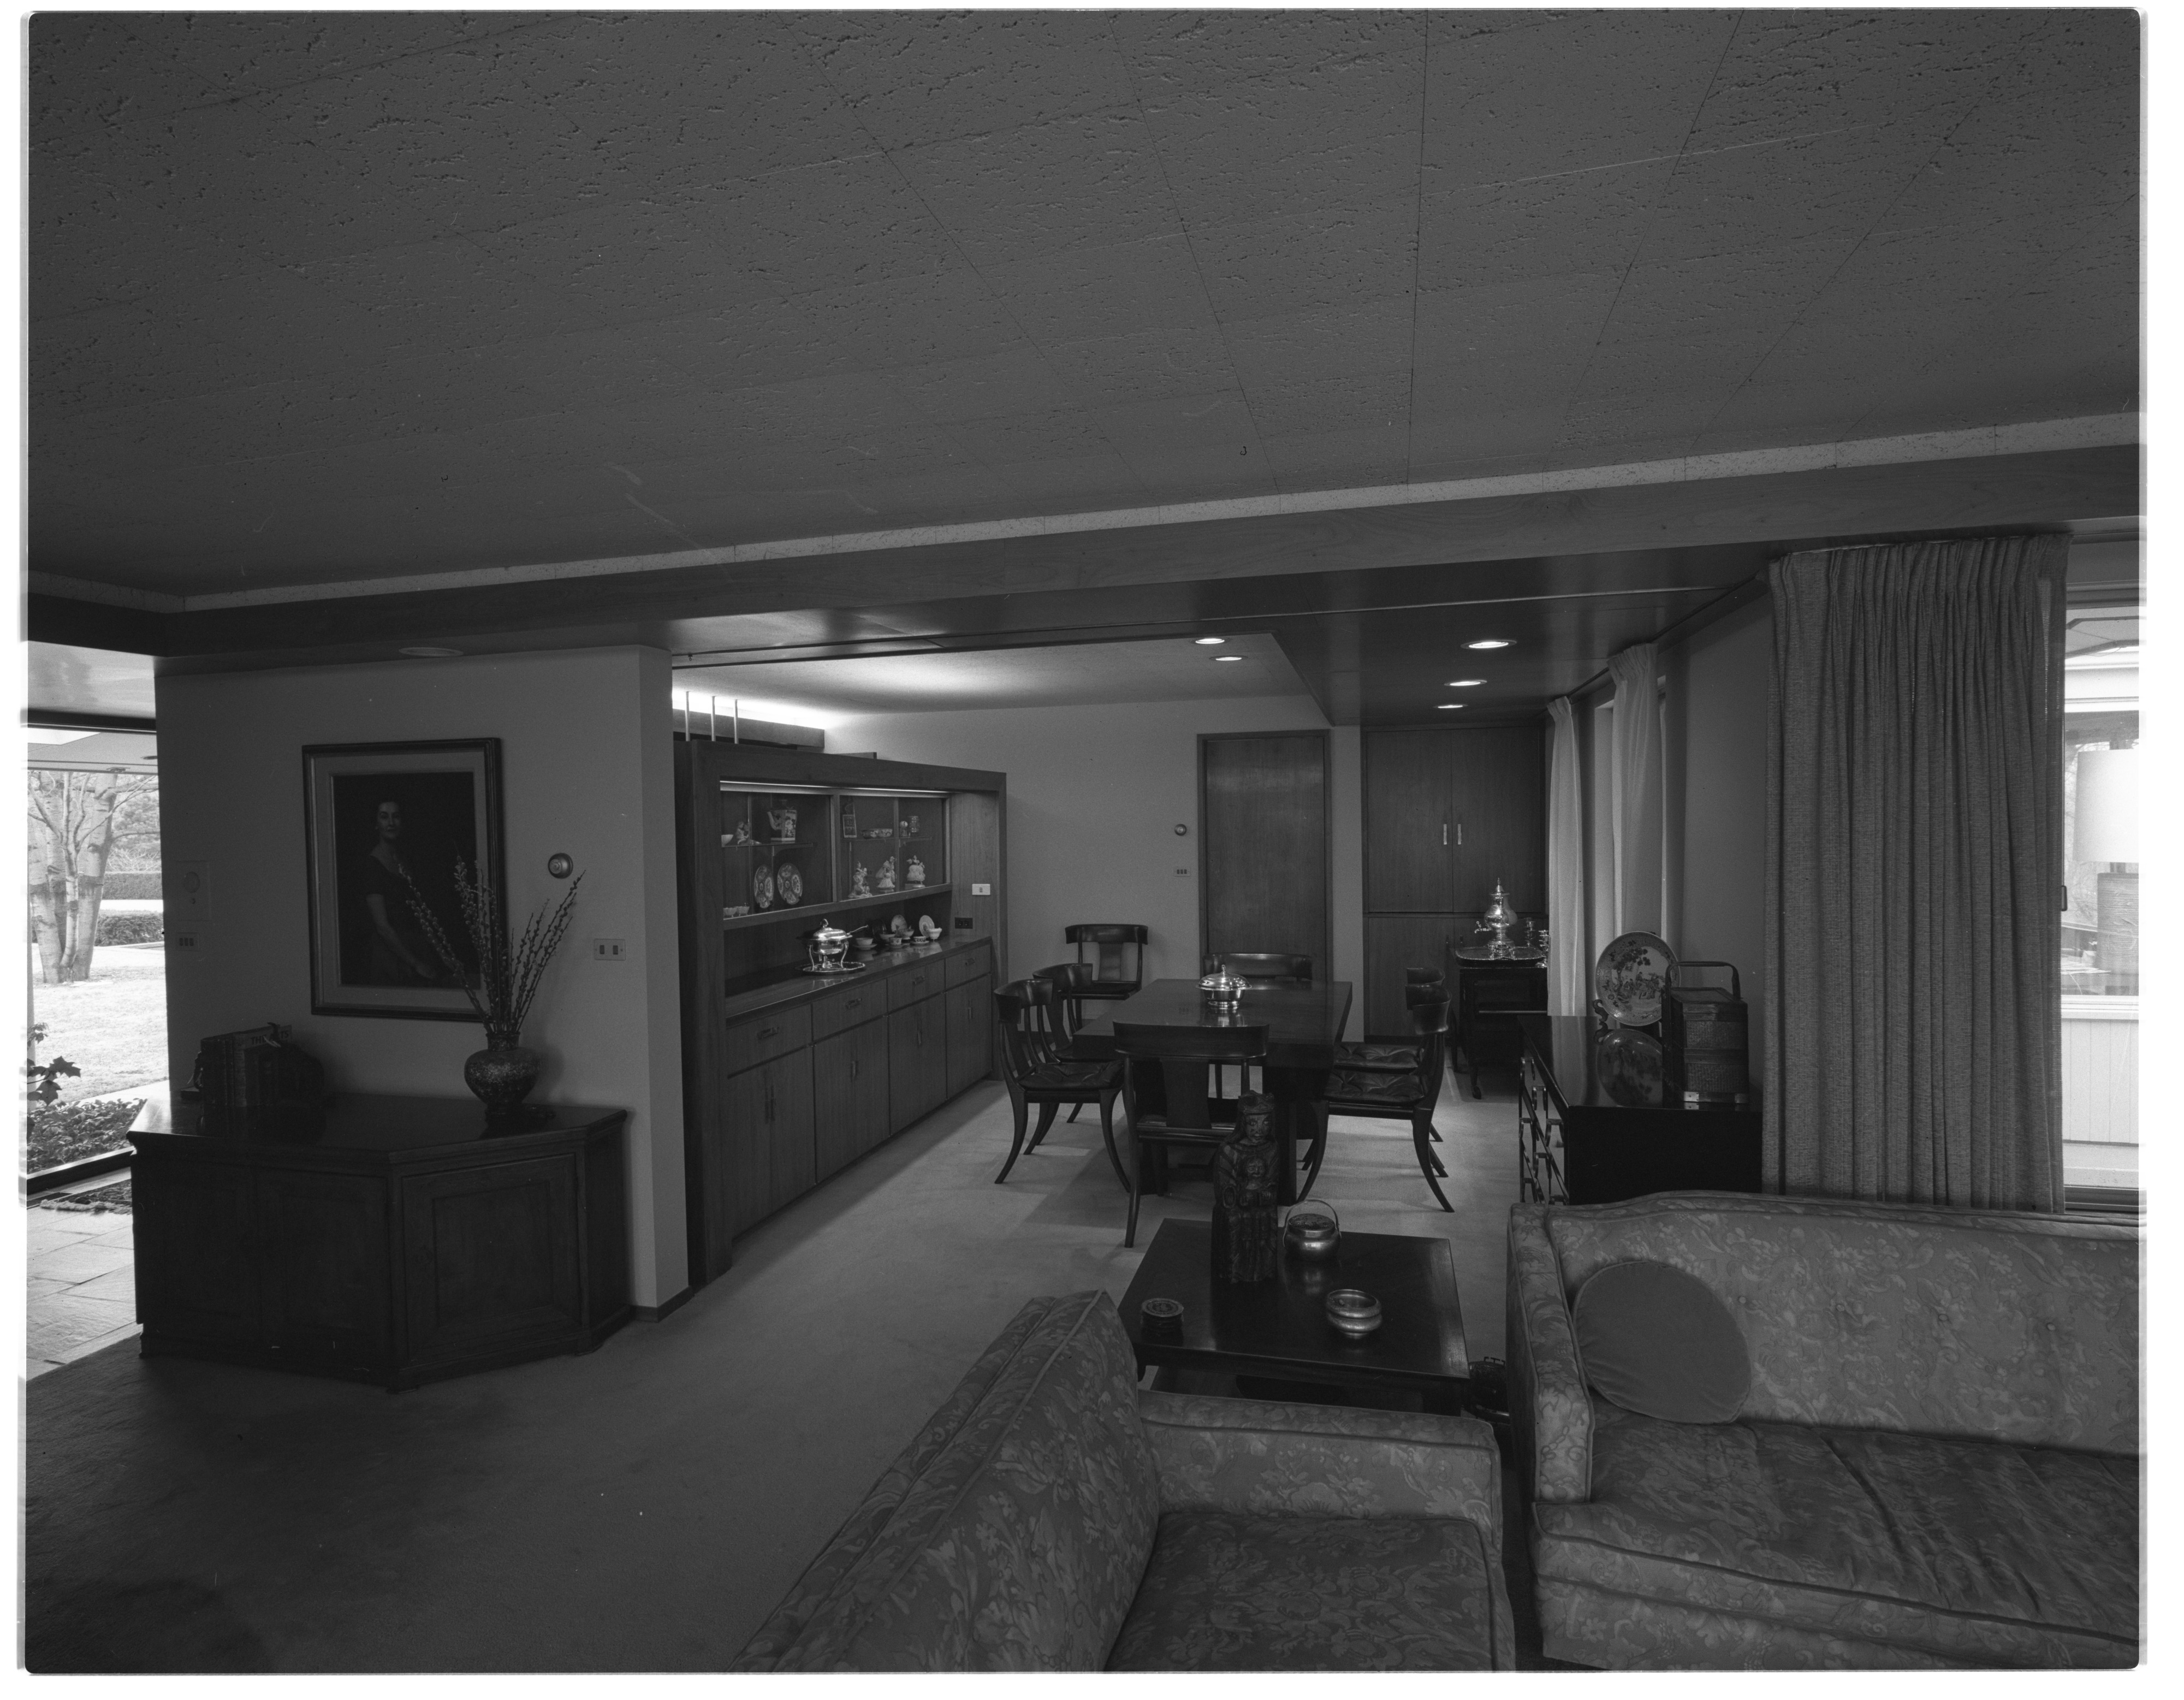 Dining Room of Mrs. Henry Wege Home, April 1969 image